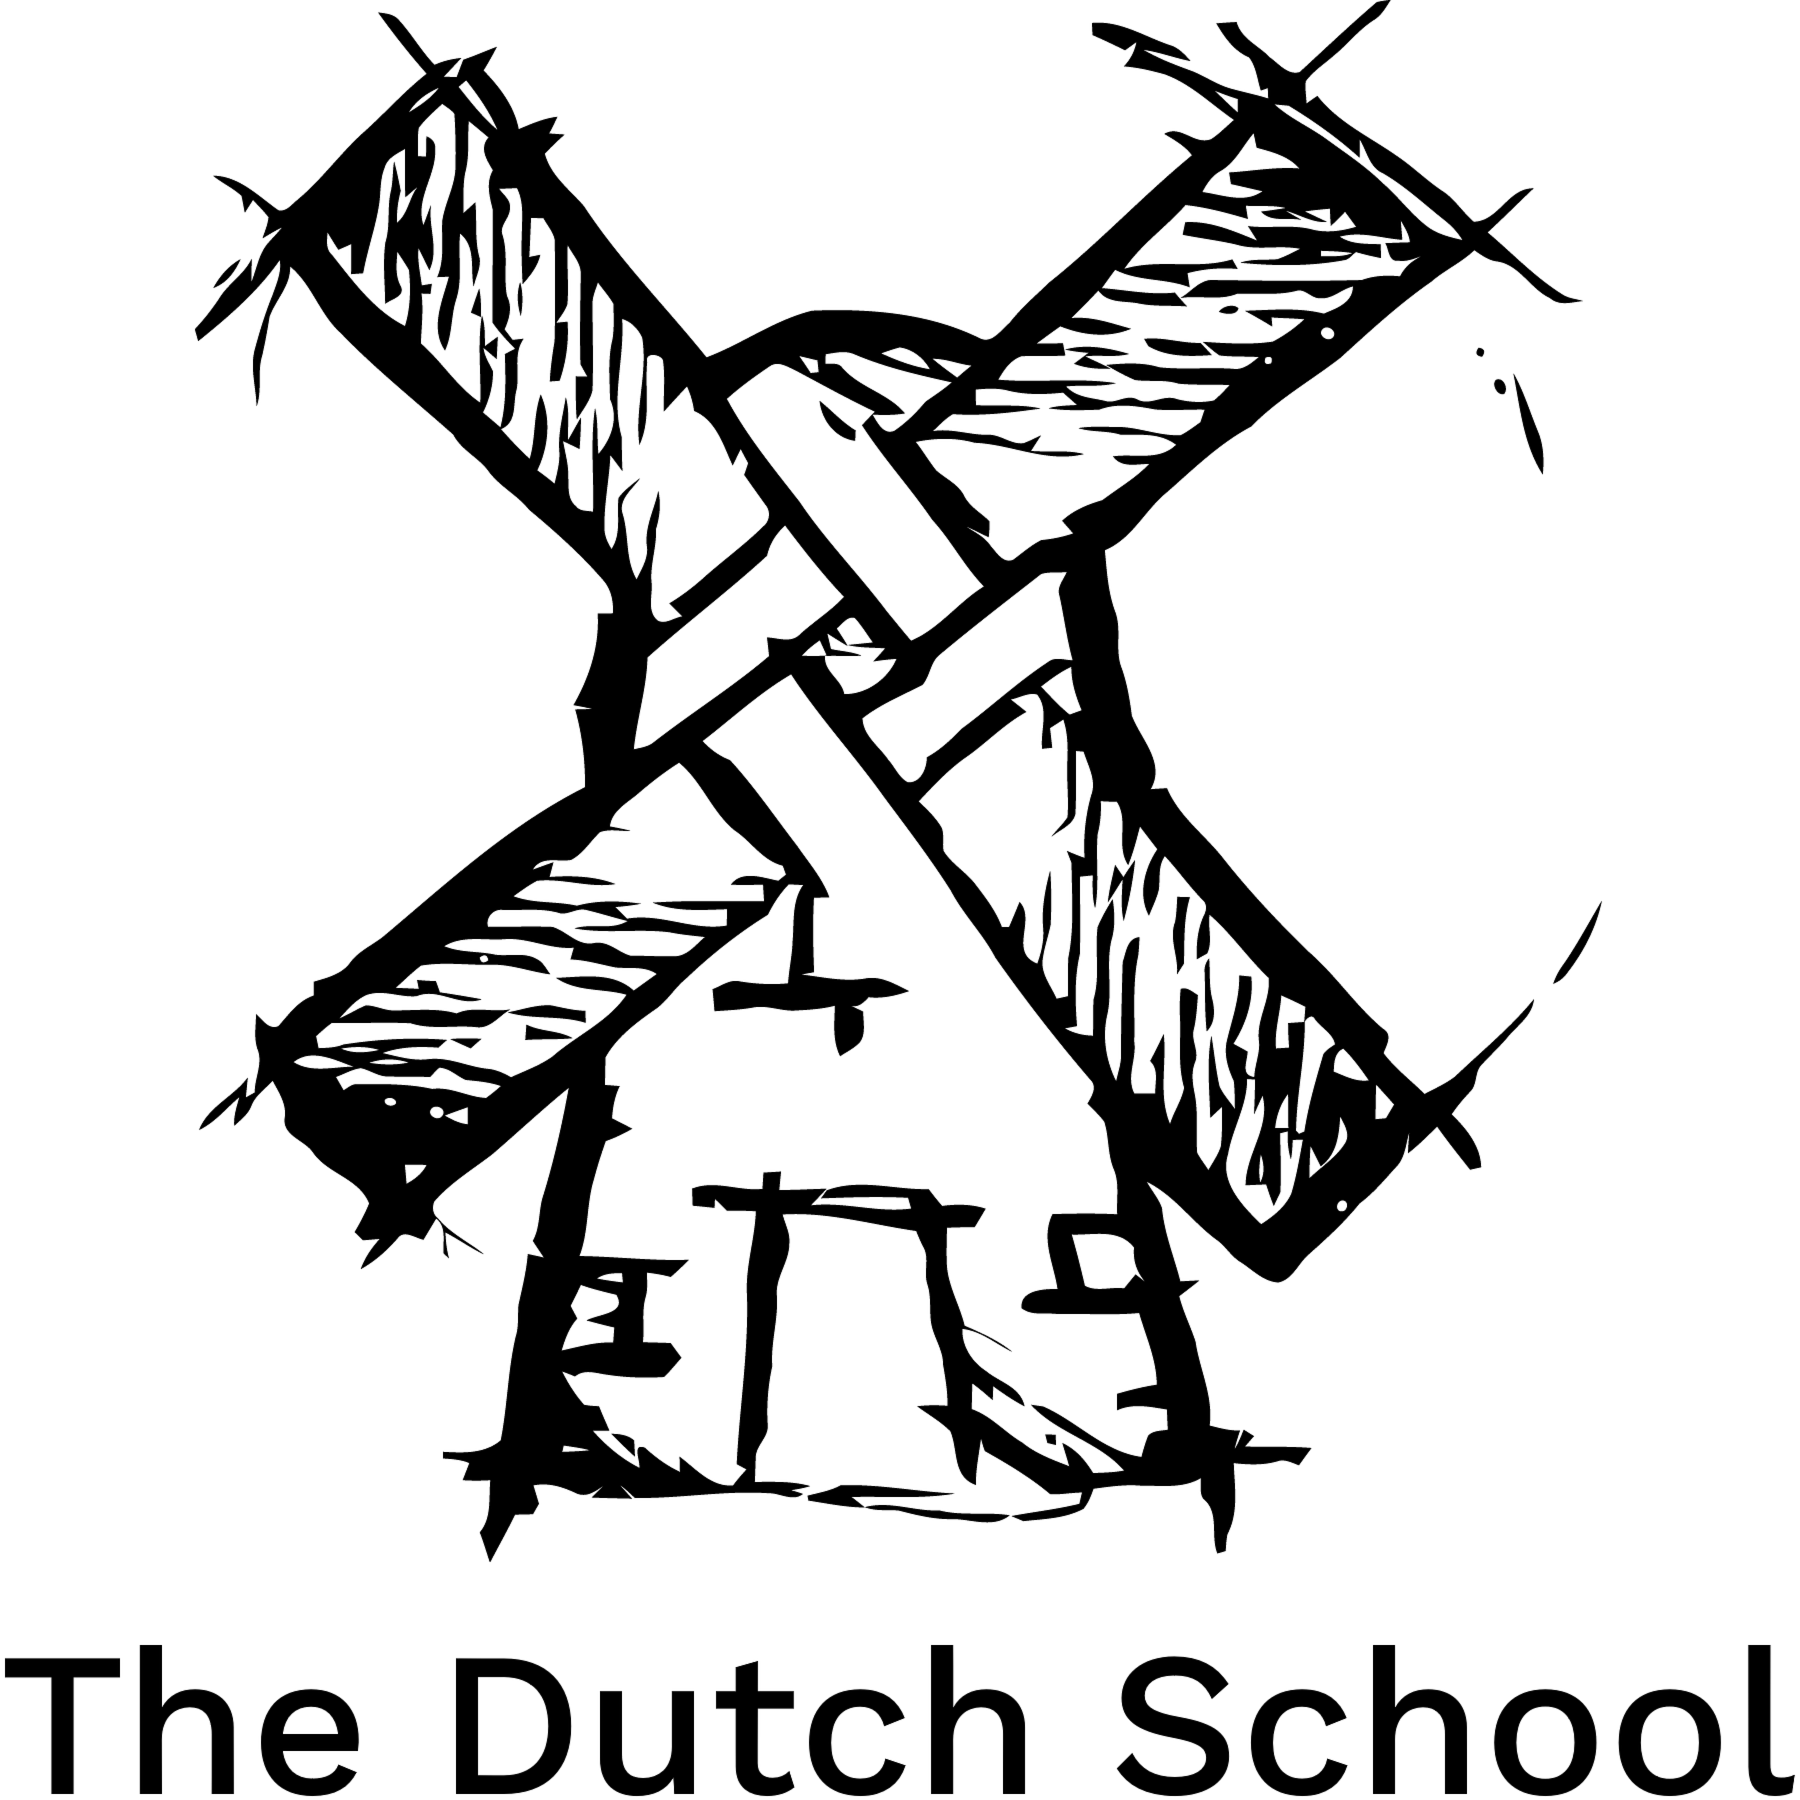 January clipart black and white. Stichting the dutch school